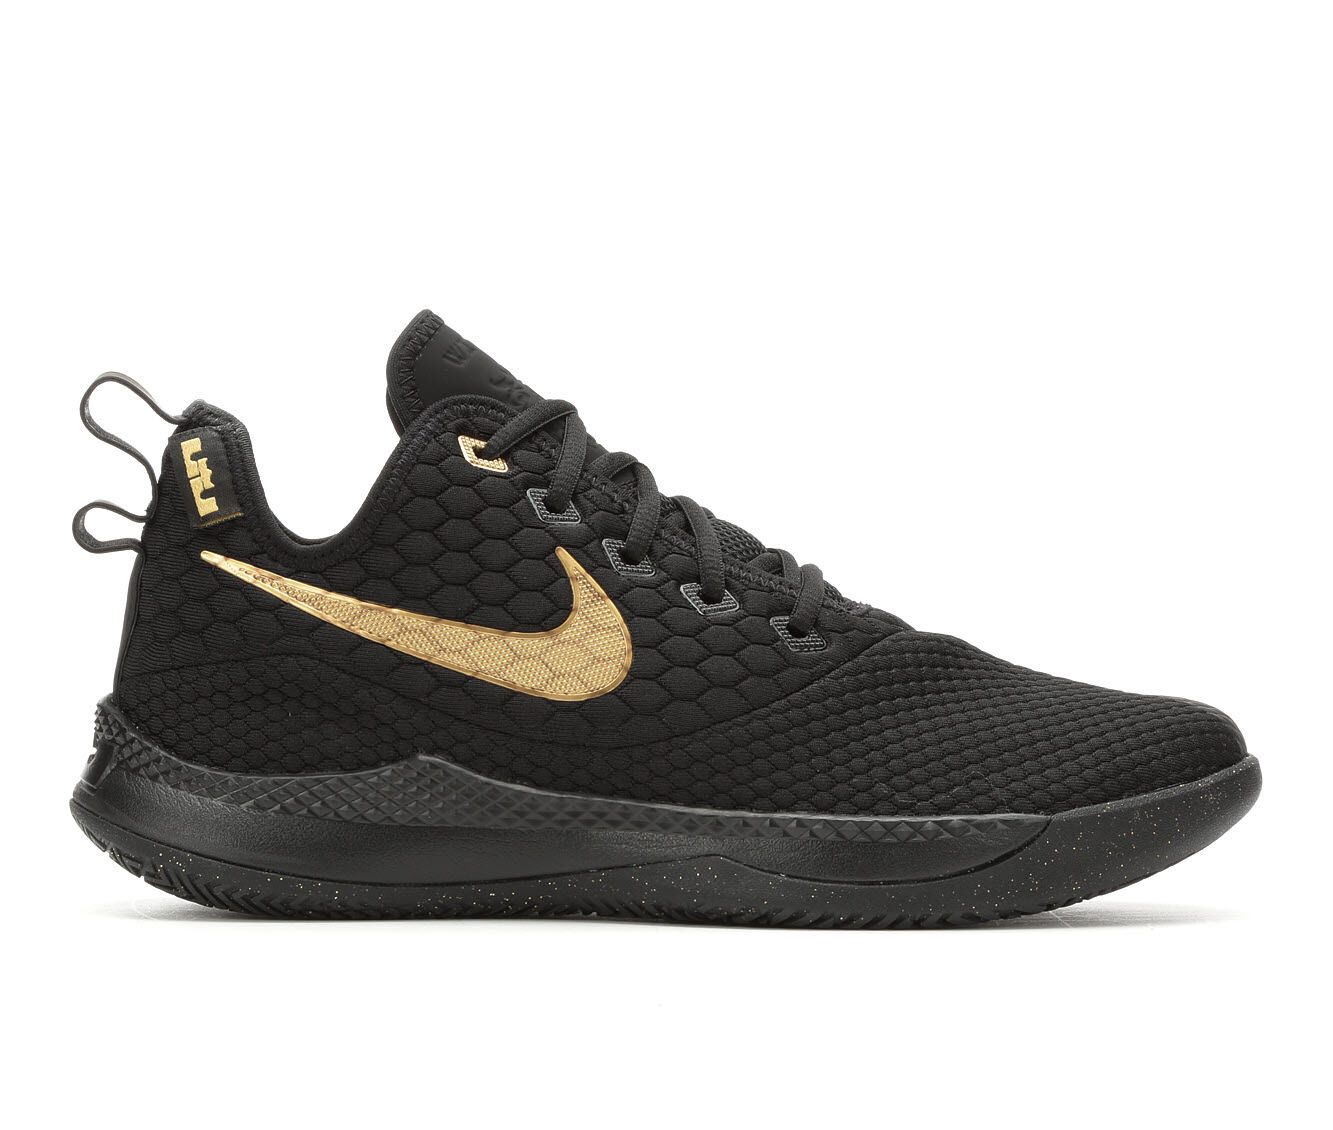 choose cheap Men's Nike Lebron Witness III Basketball Shoes Blk/Gold